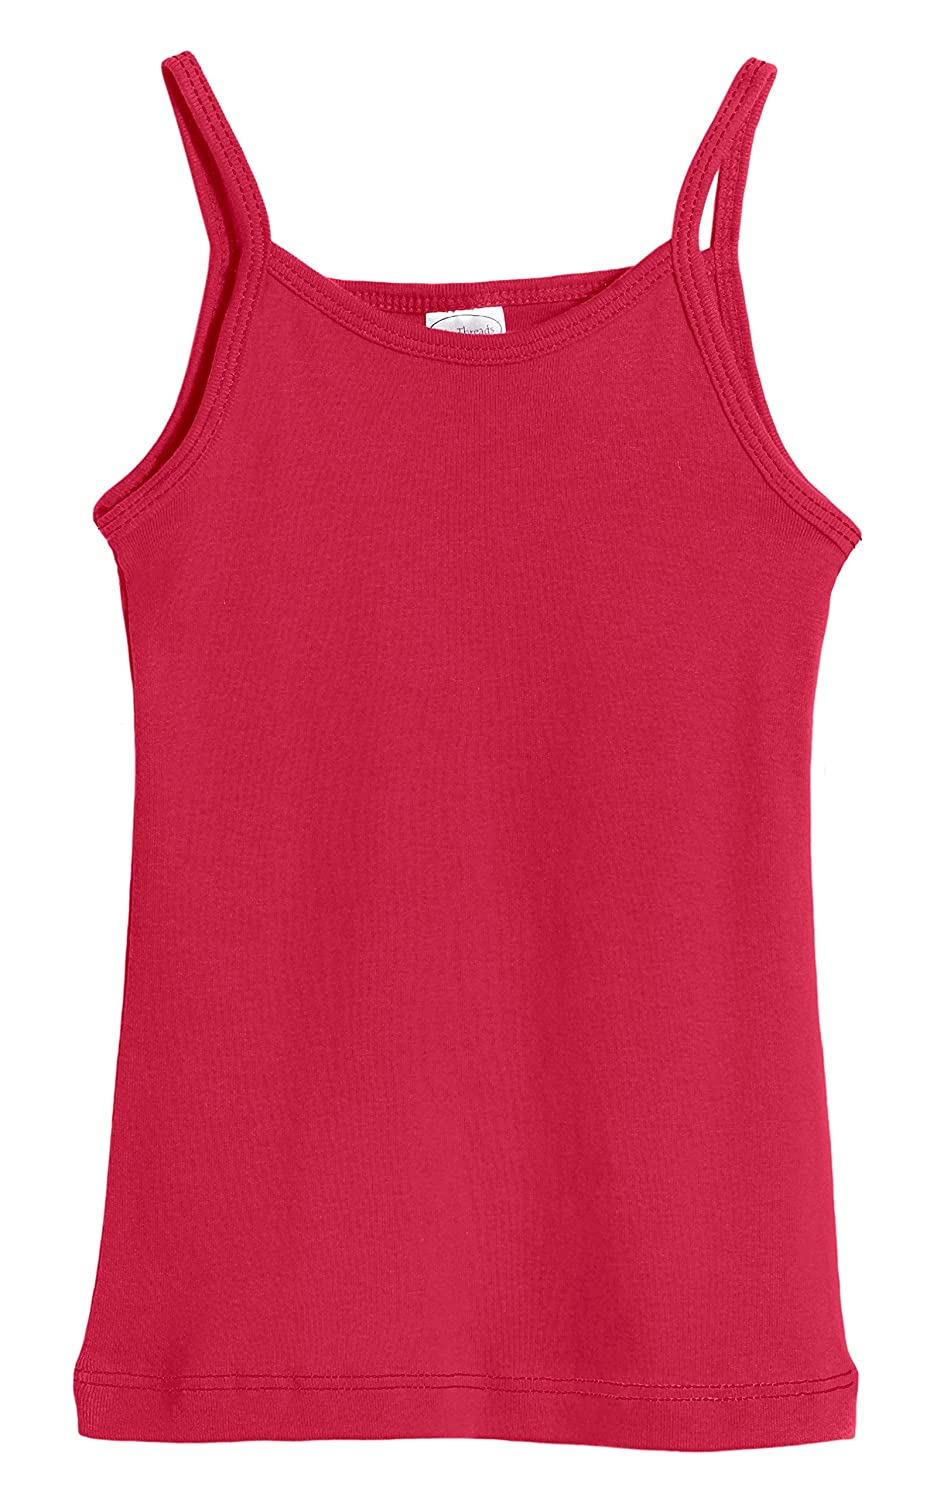 City Threads Girls' 100% Cotton Camisole Cami Tank Top Tee - Made in USA CT-CAMI-SINGLE-P